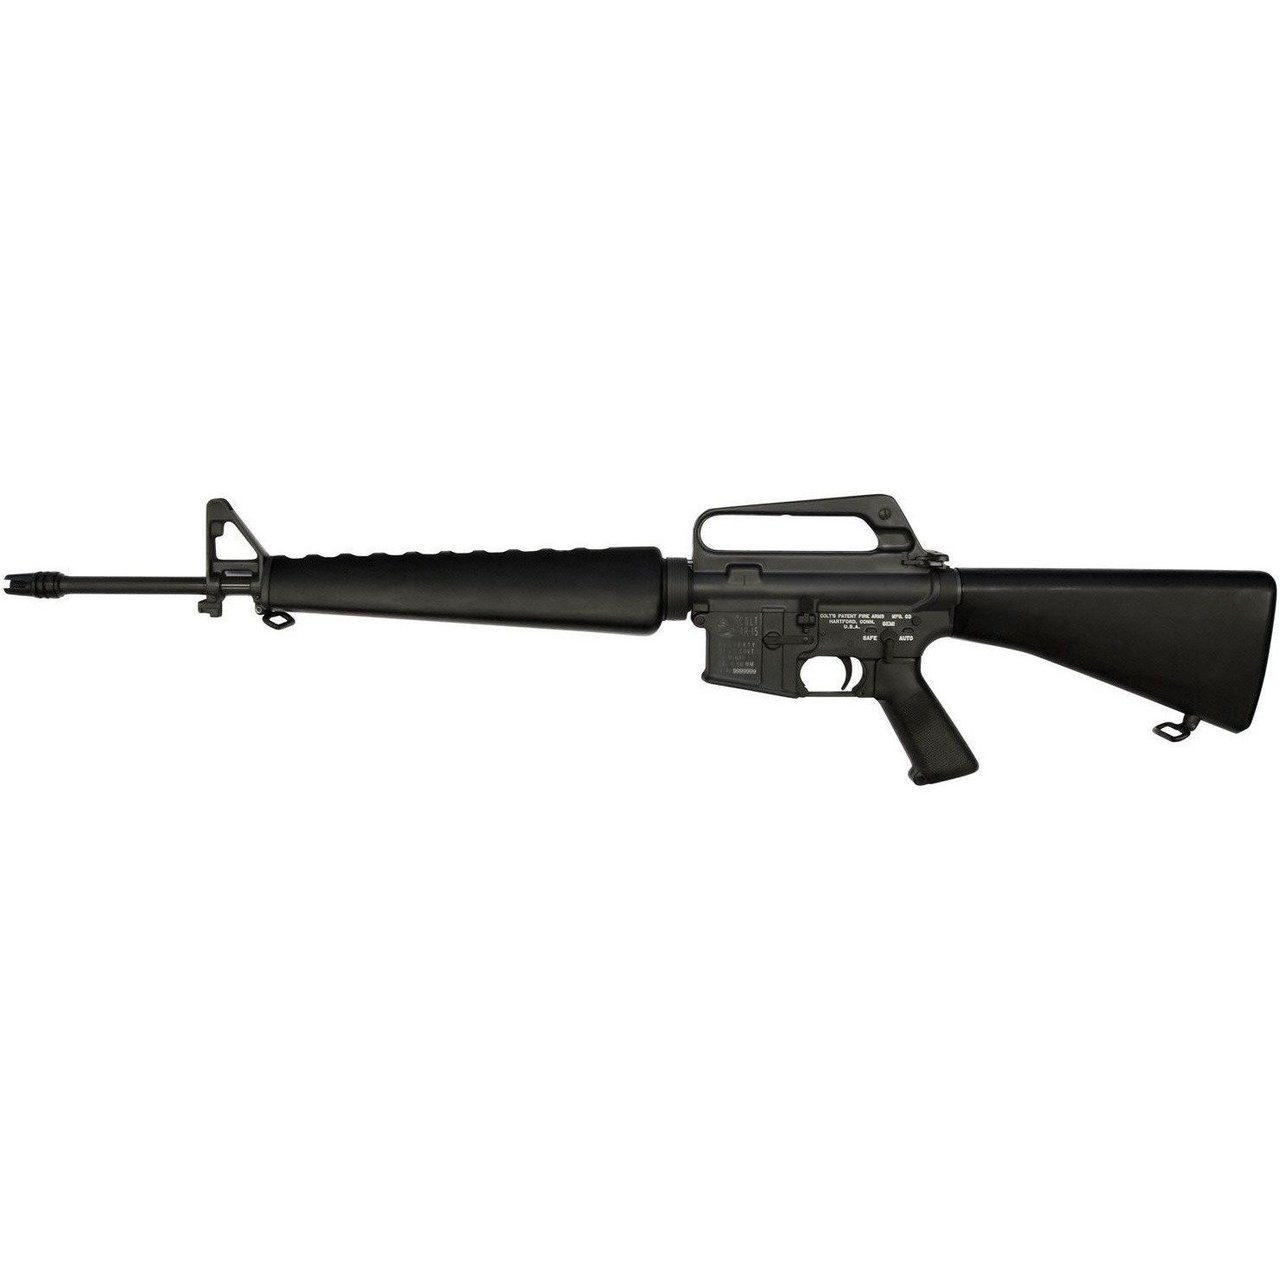 Colt M16A1 Retro Re-issue semi-automatic rifle